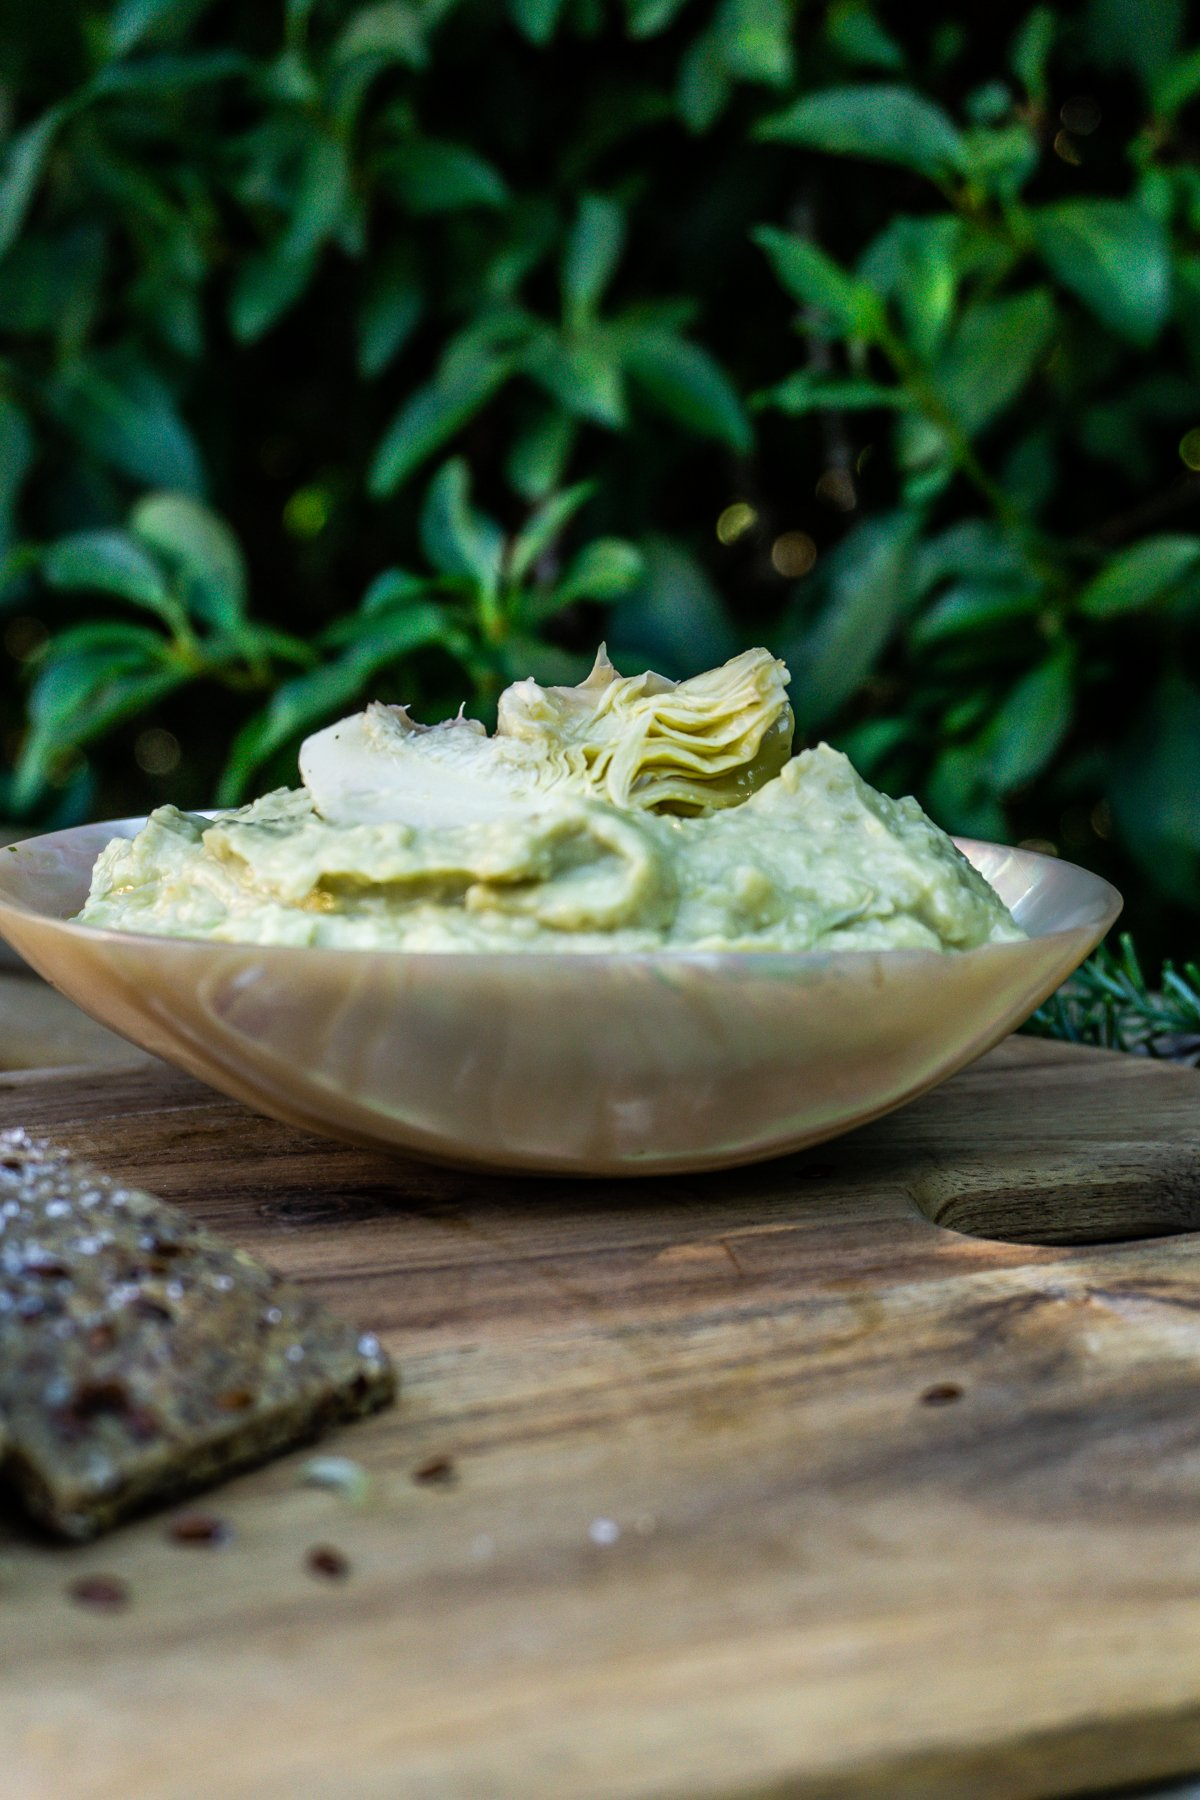 Delicious Artichoke Dip in a bowl with greenery in the background